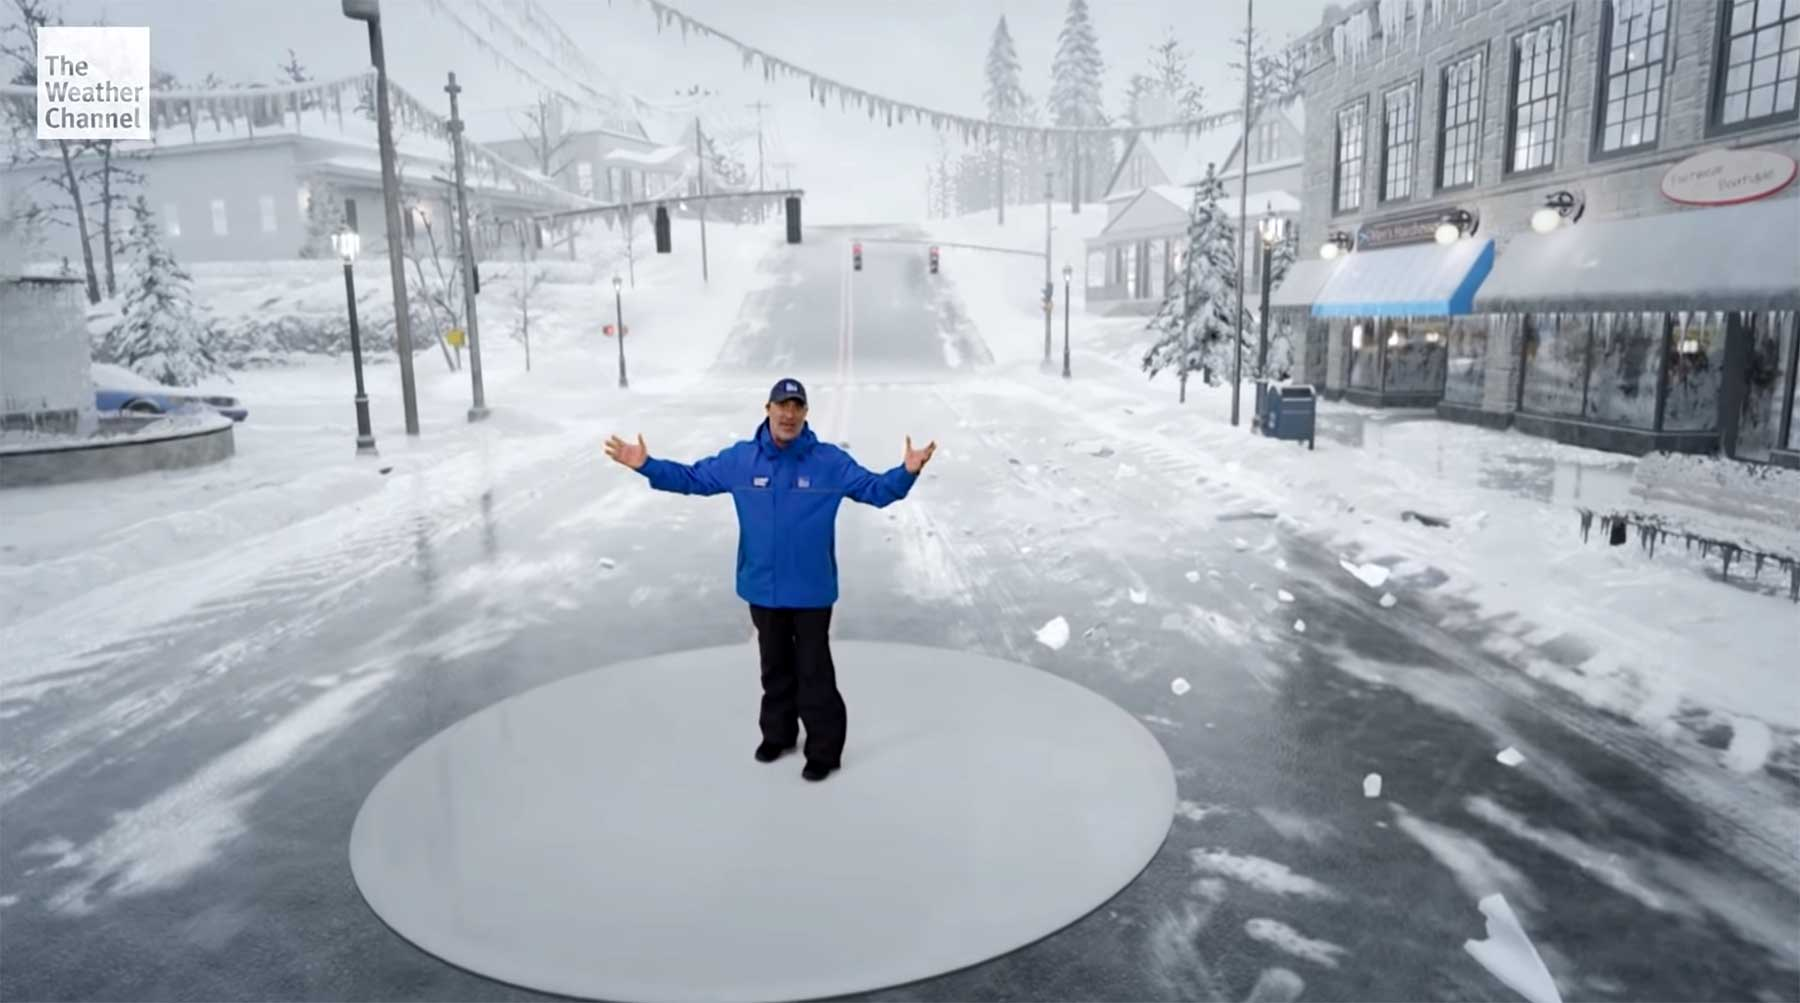 Wetterbericht mit Augmented Reality-Eissturm The-Science-Behind-Ice-Storms